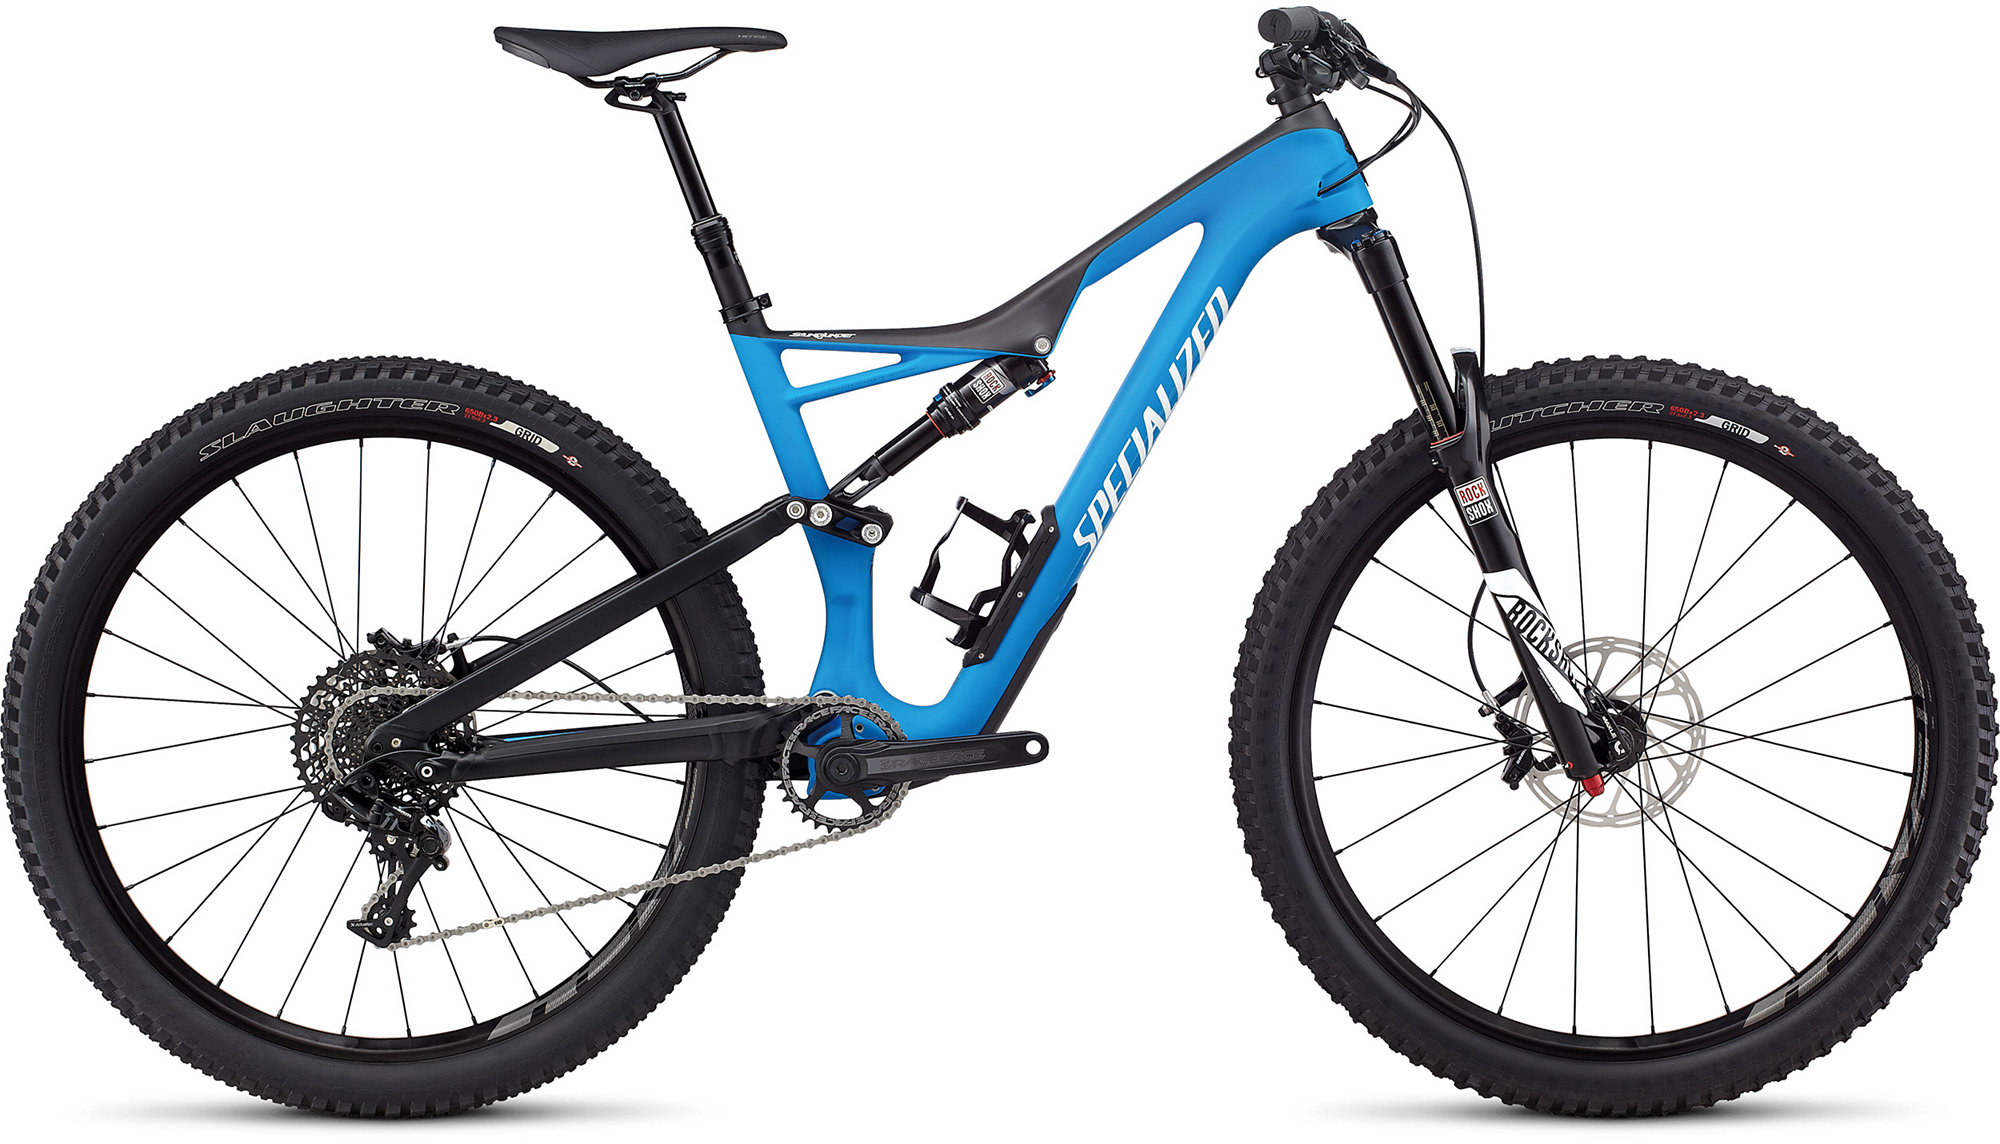 a827ae25b6b 2017 Specialized Stumpjumper FSR Comp Carbon 650b - Specialized Concept  Store